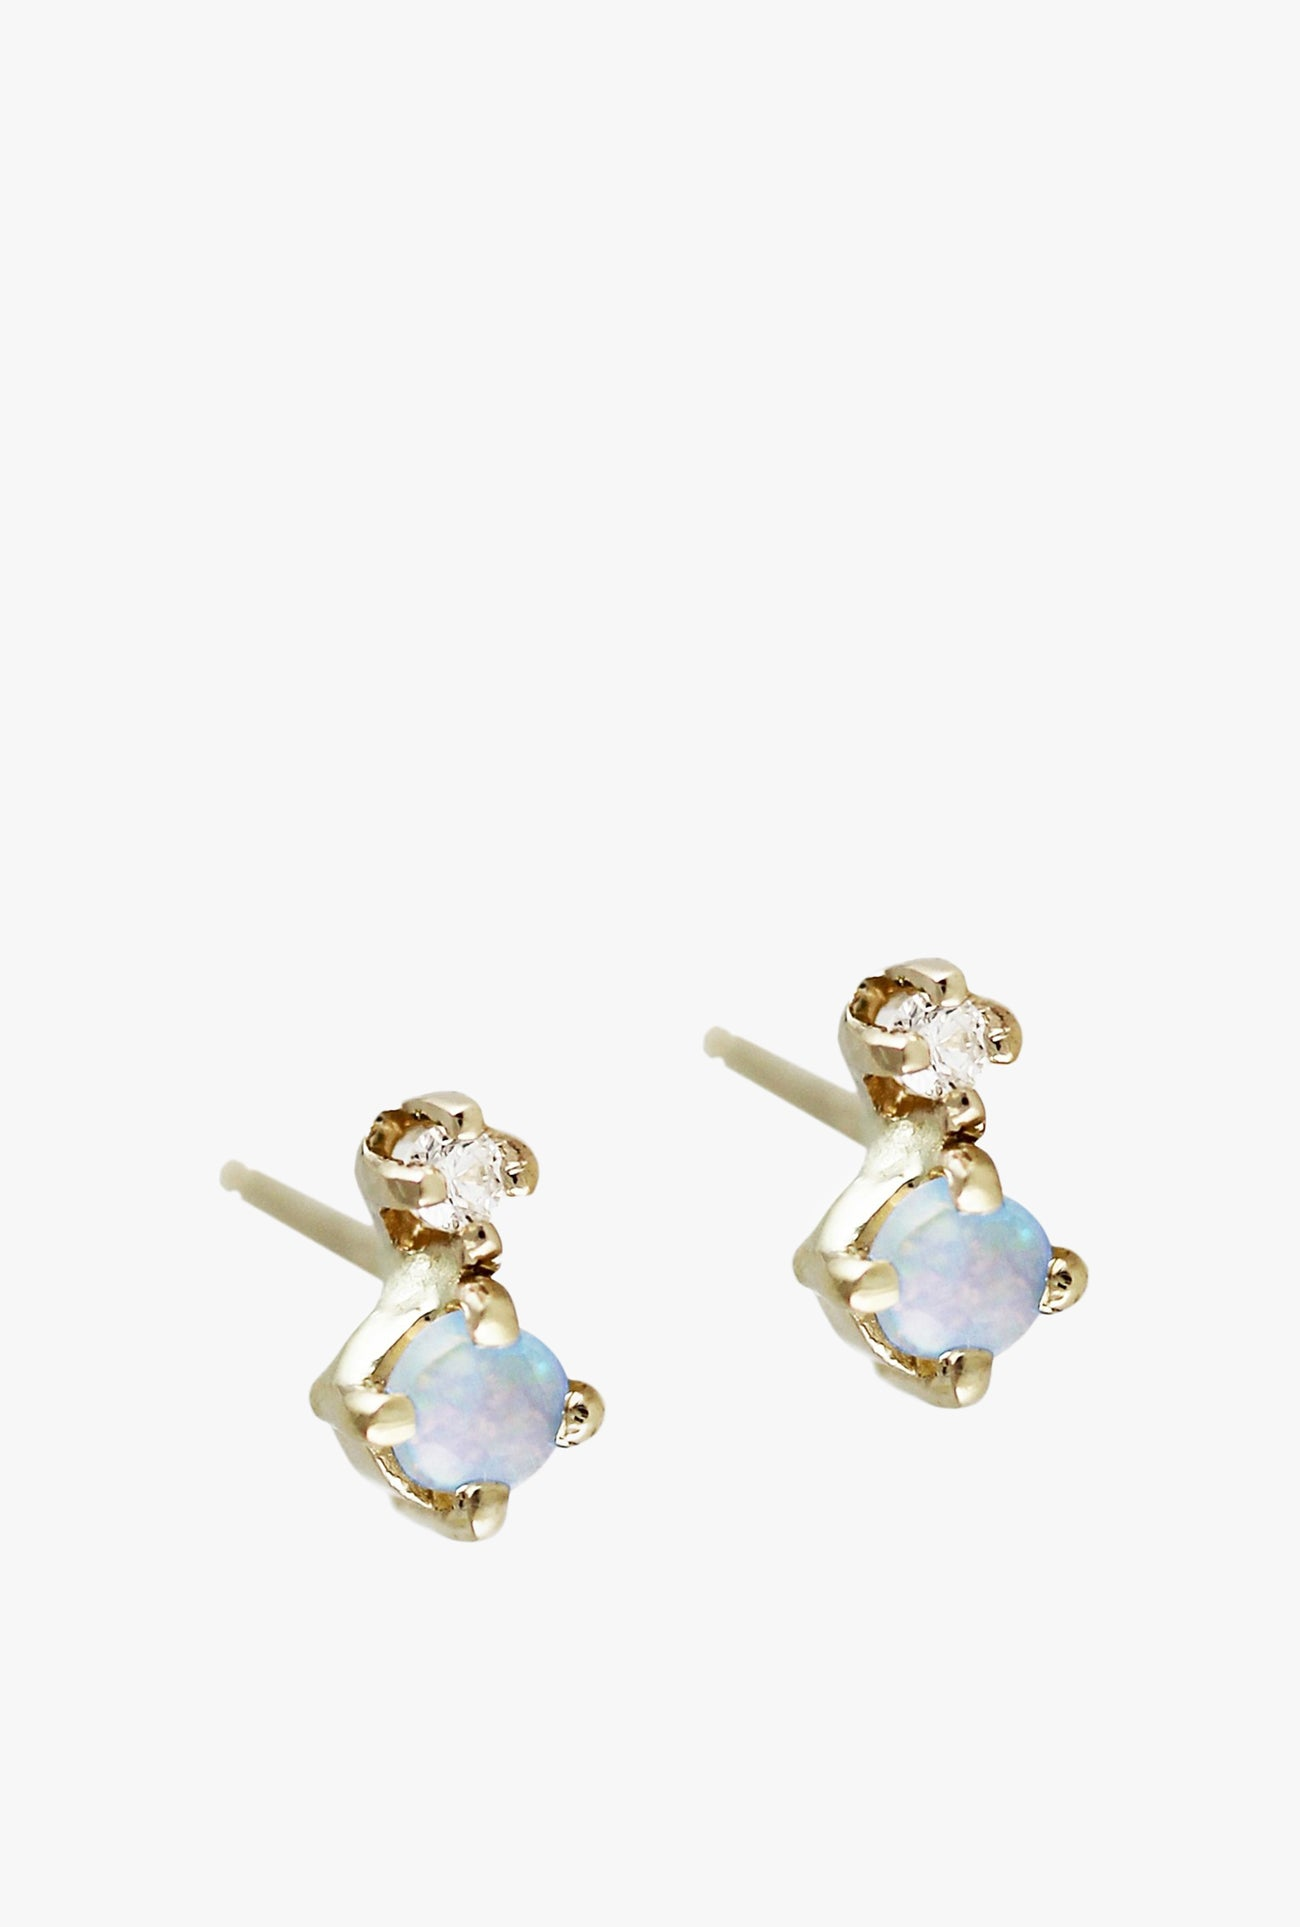 Tiny Opal And Diamond Stud Earrings P